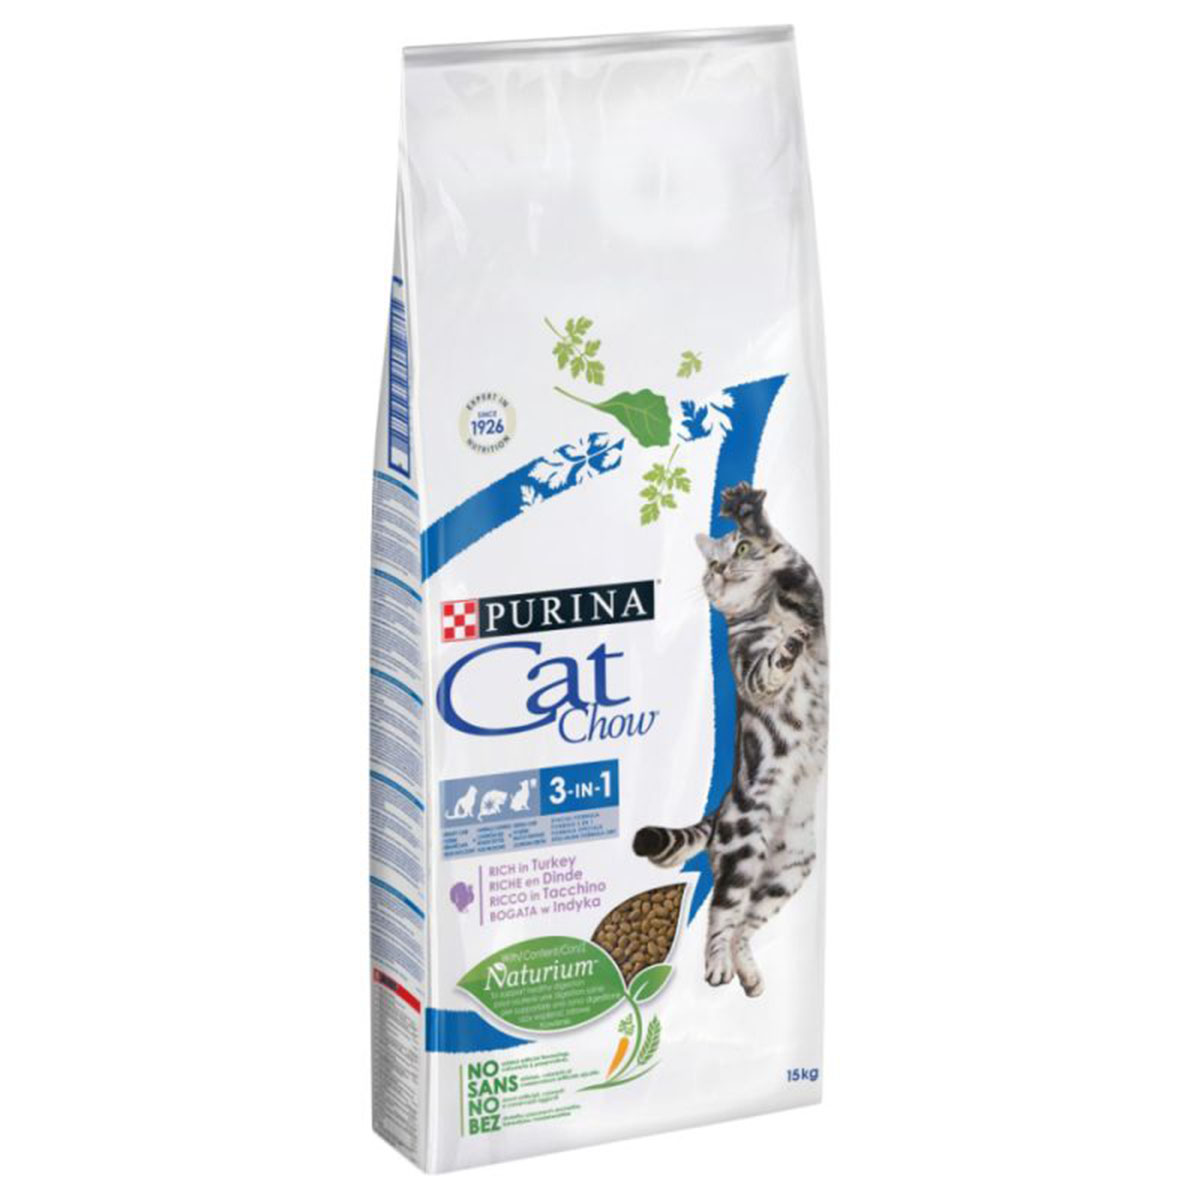 PURINA CAT CHOW - Croquette Spécial Care 3 en 1, Dinde Chat Adulte - 10kg